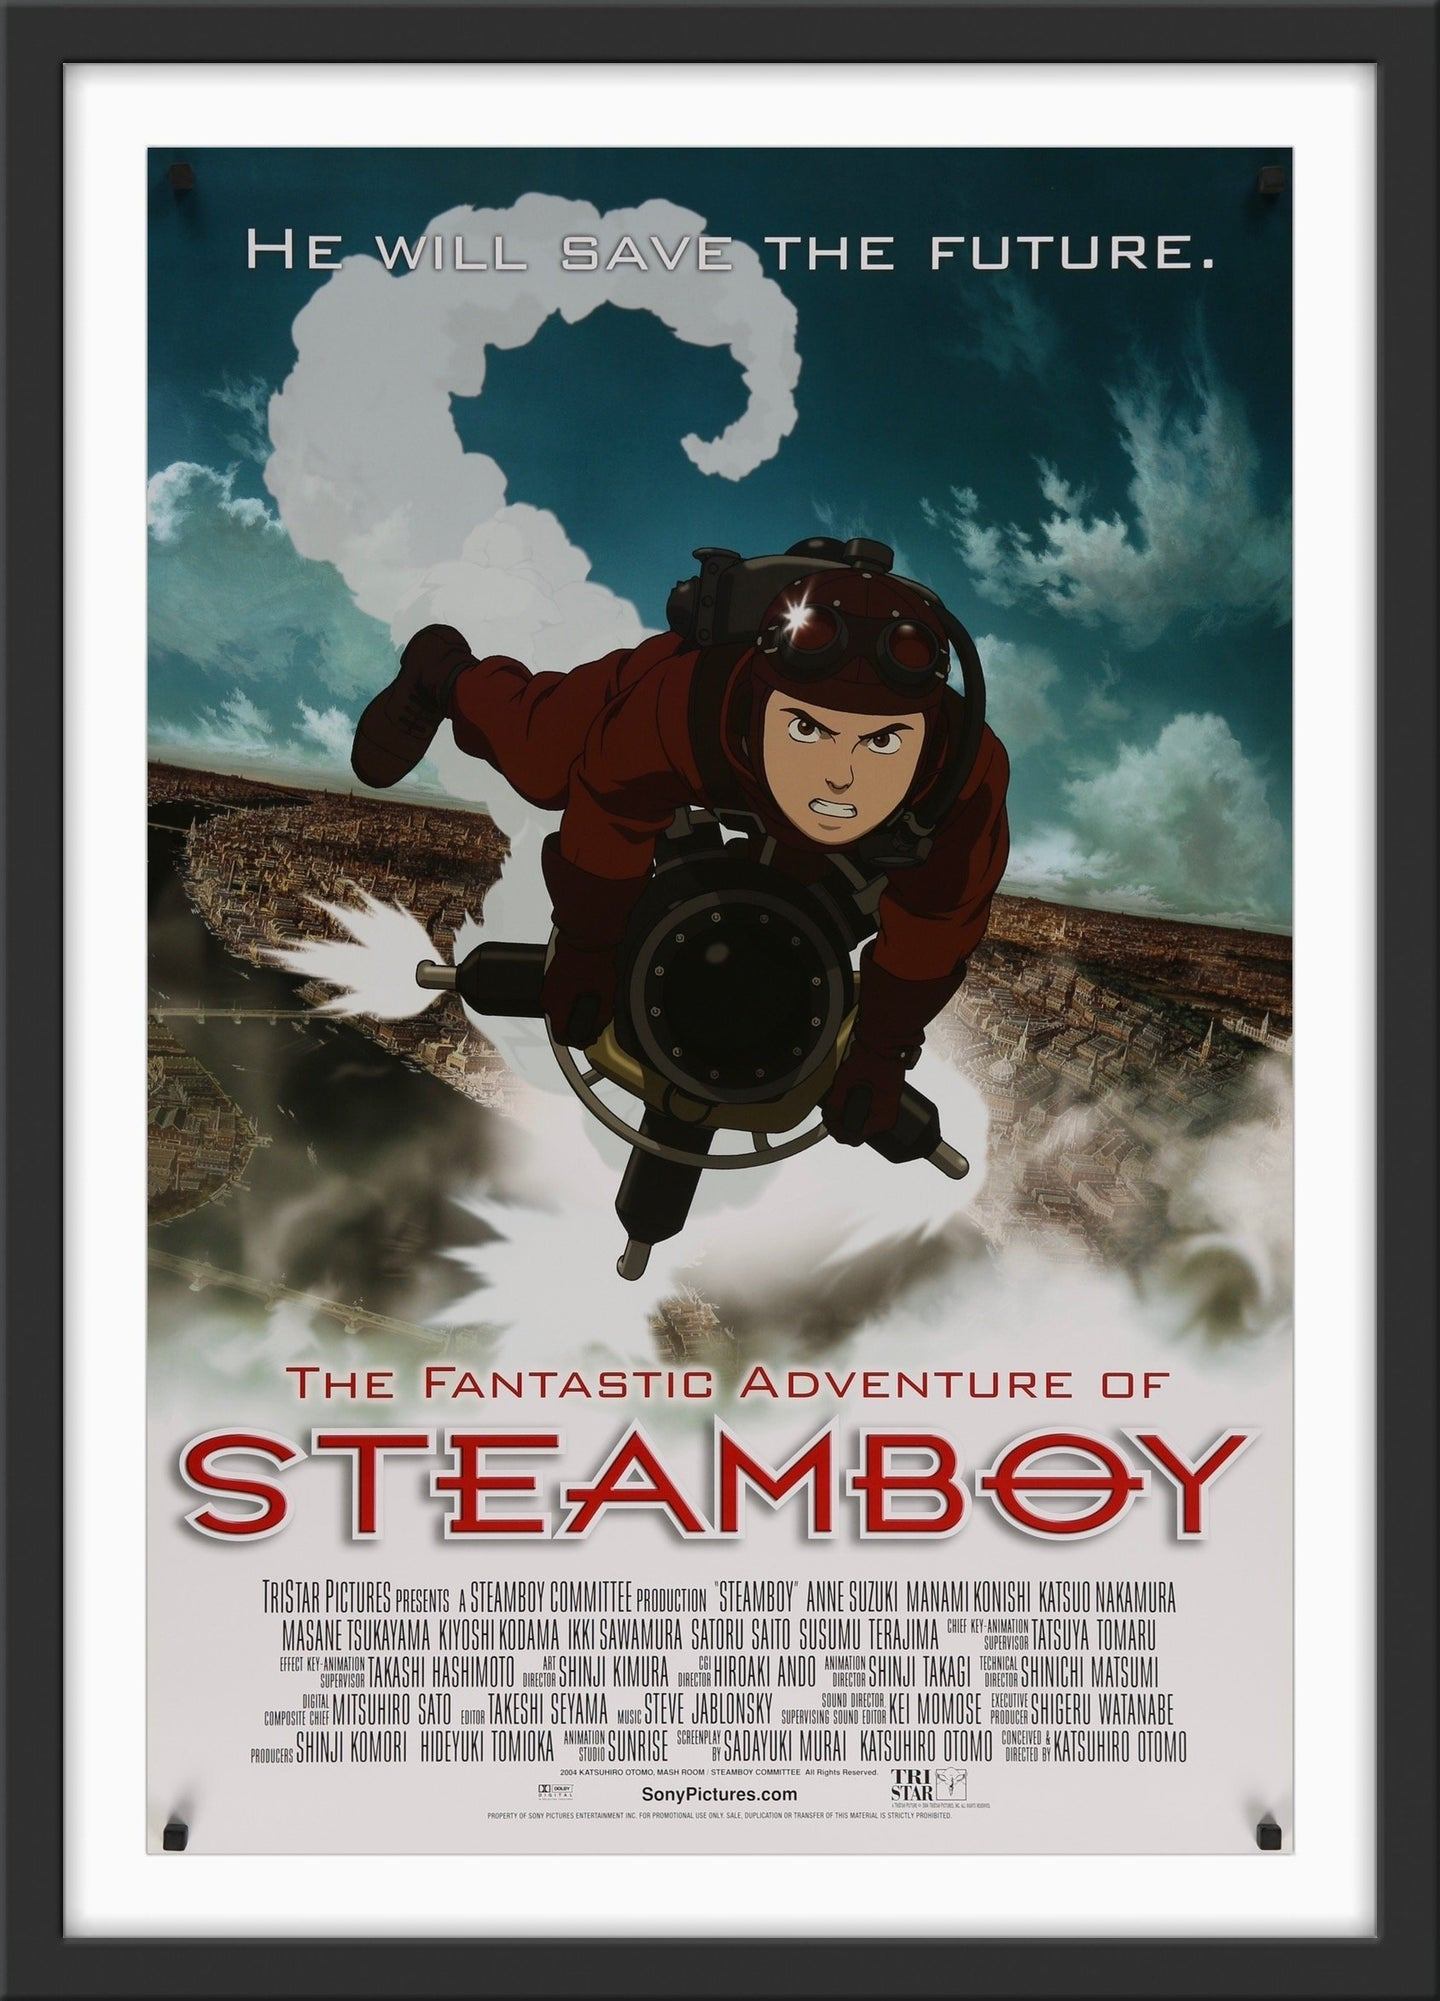 An original movie poster for the animated film Steamboy